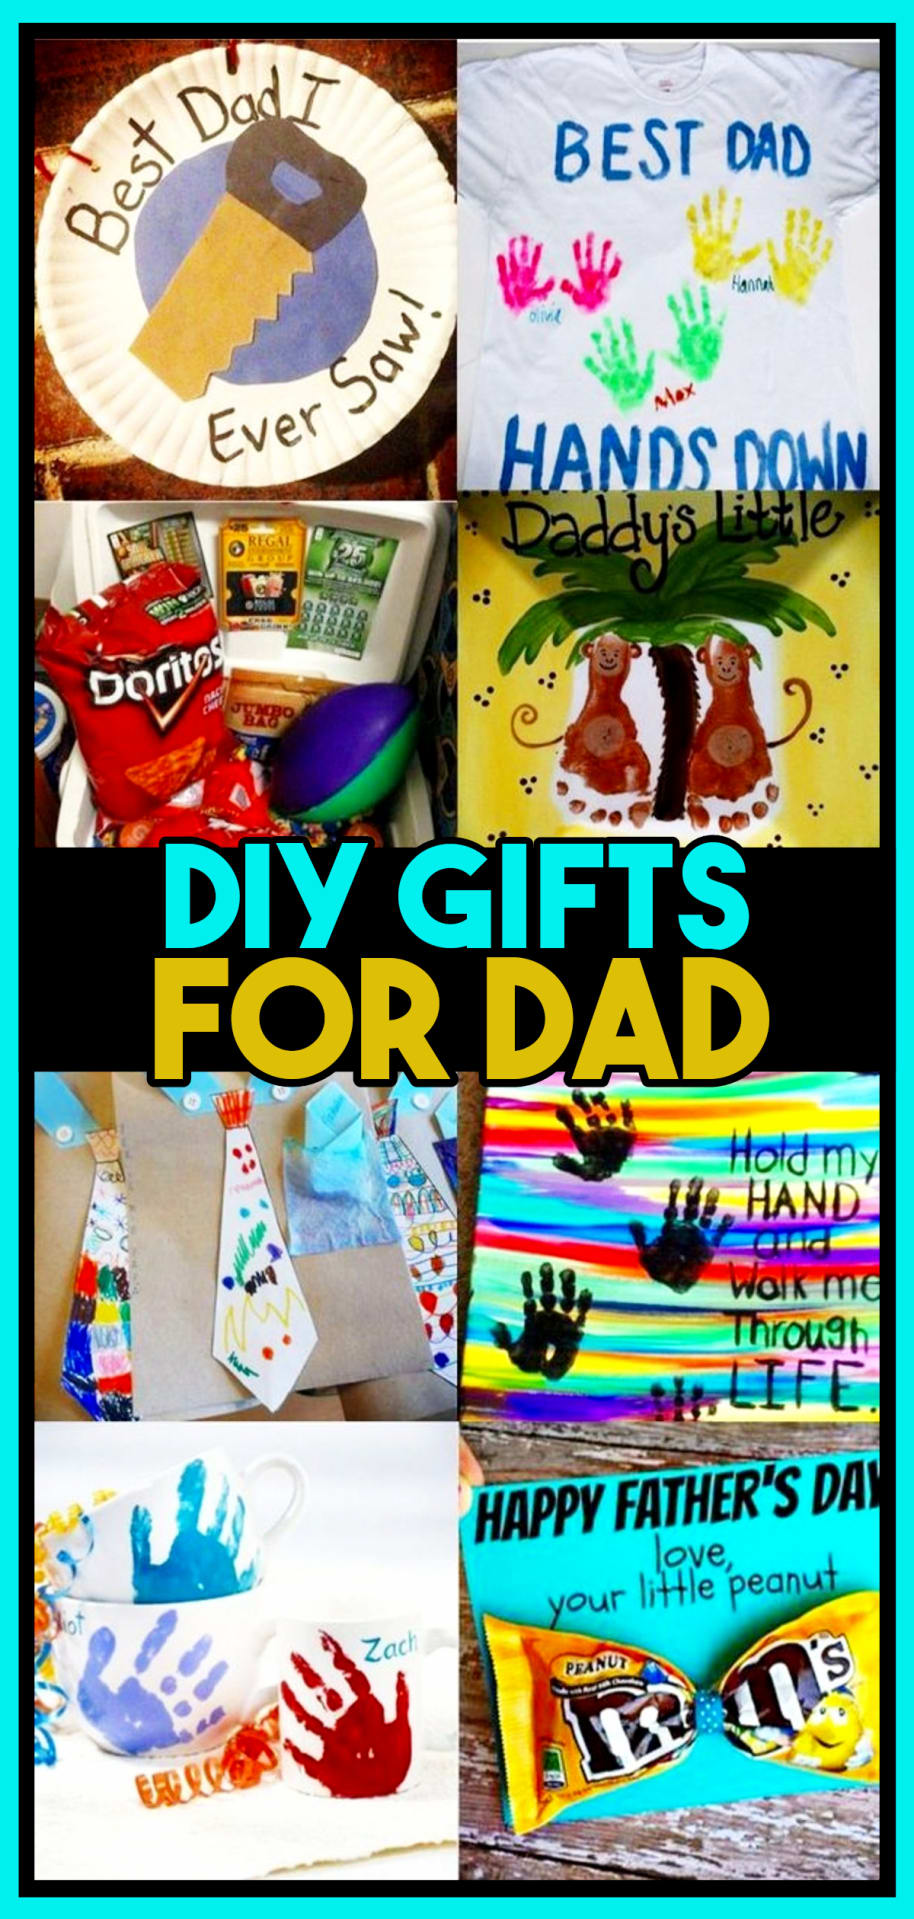 Homemade Gifts For My Dad For - Gift Ideas